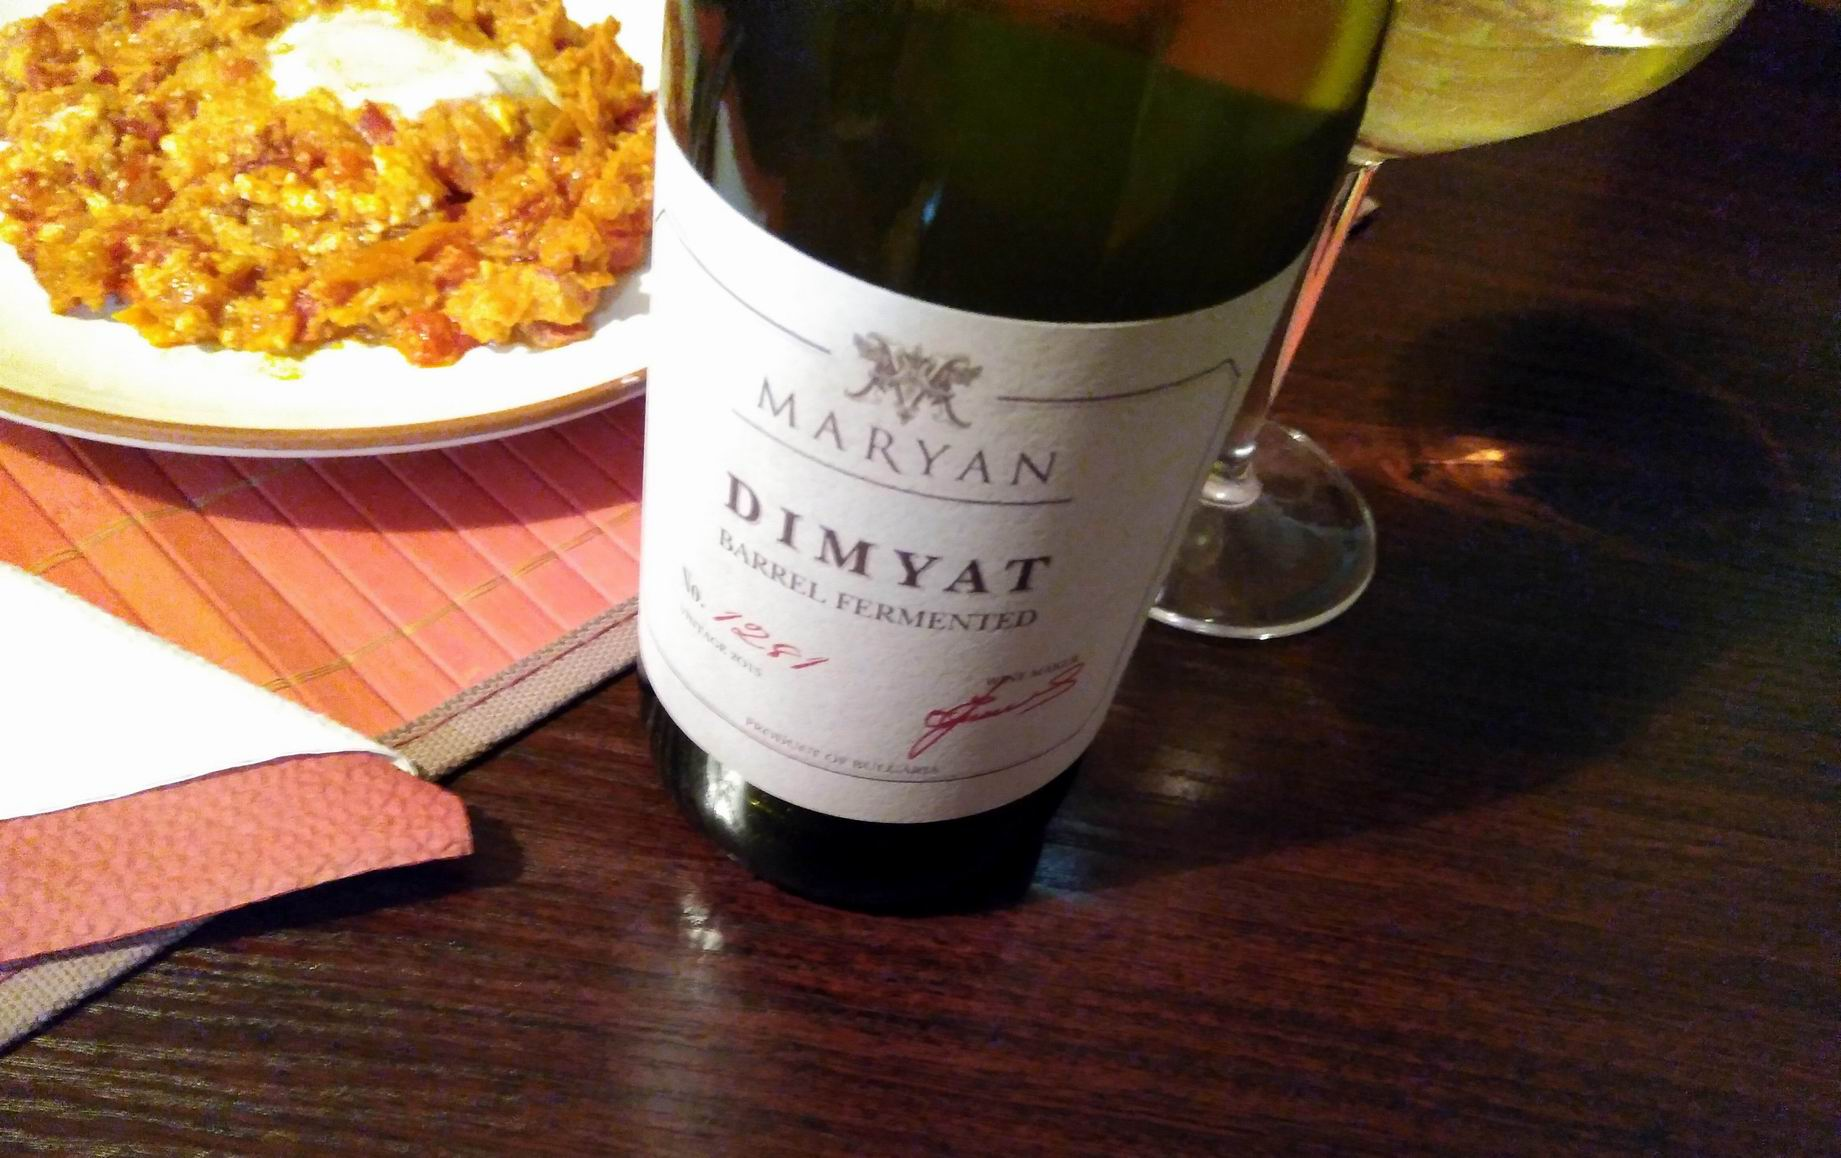 Dimyat Barrel Fermented 2015 – Maryan Winery